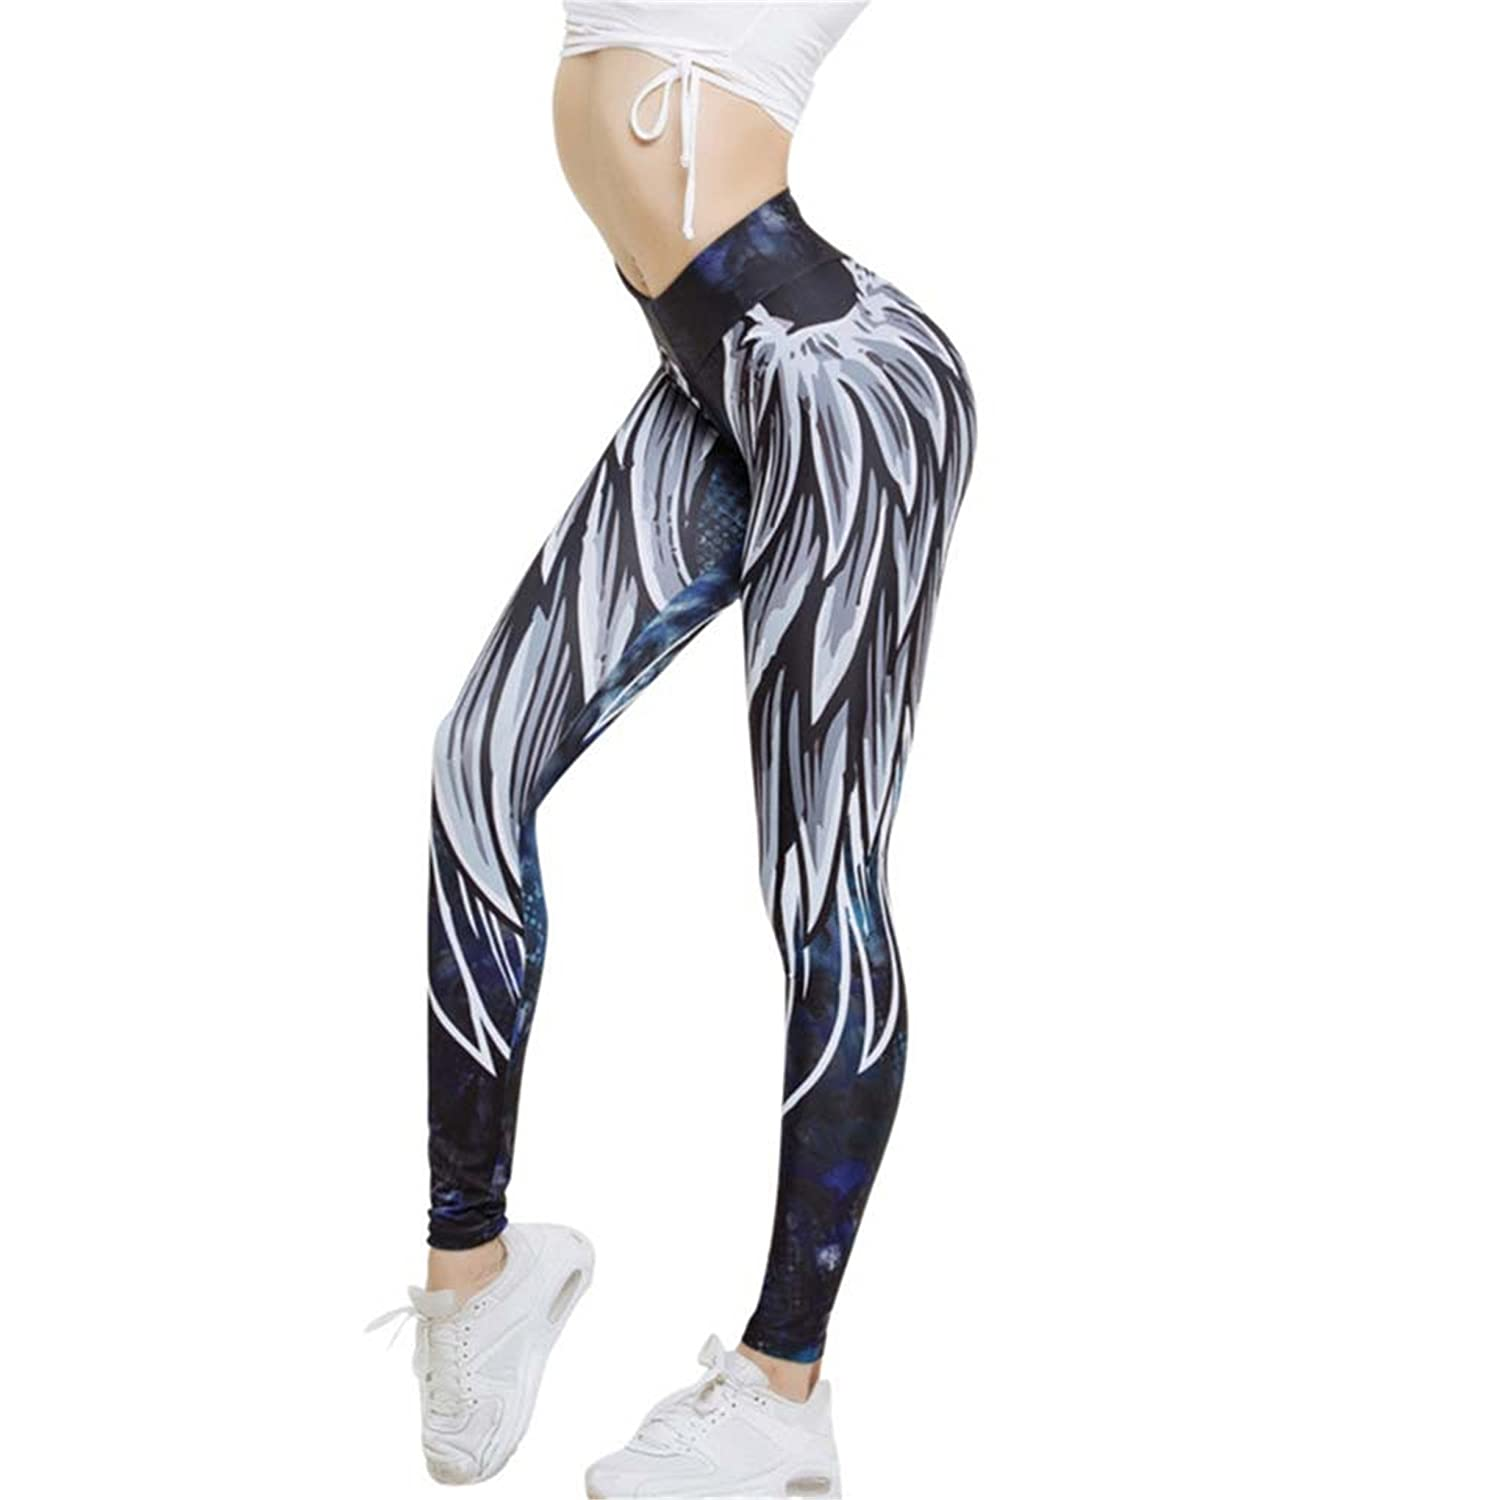 Sale! 3D Angel Wing Print Active Pants,Londony Women's Stretch High Waisted Running Leggings